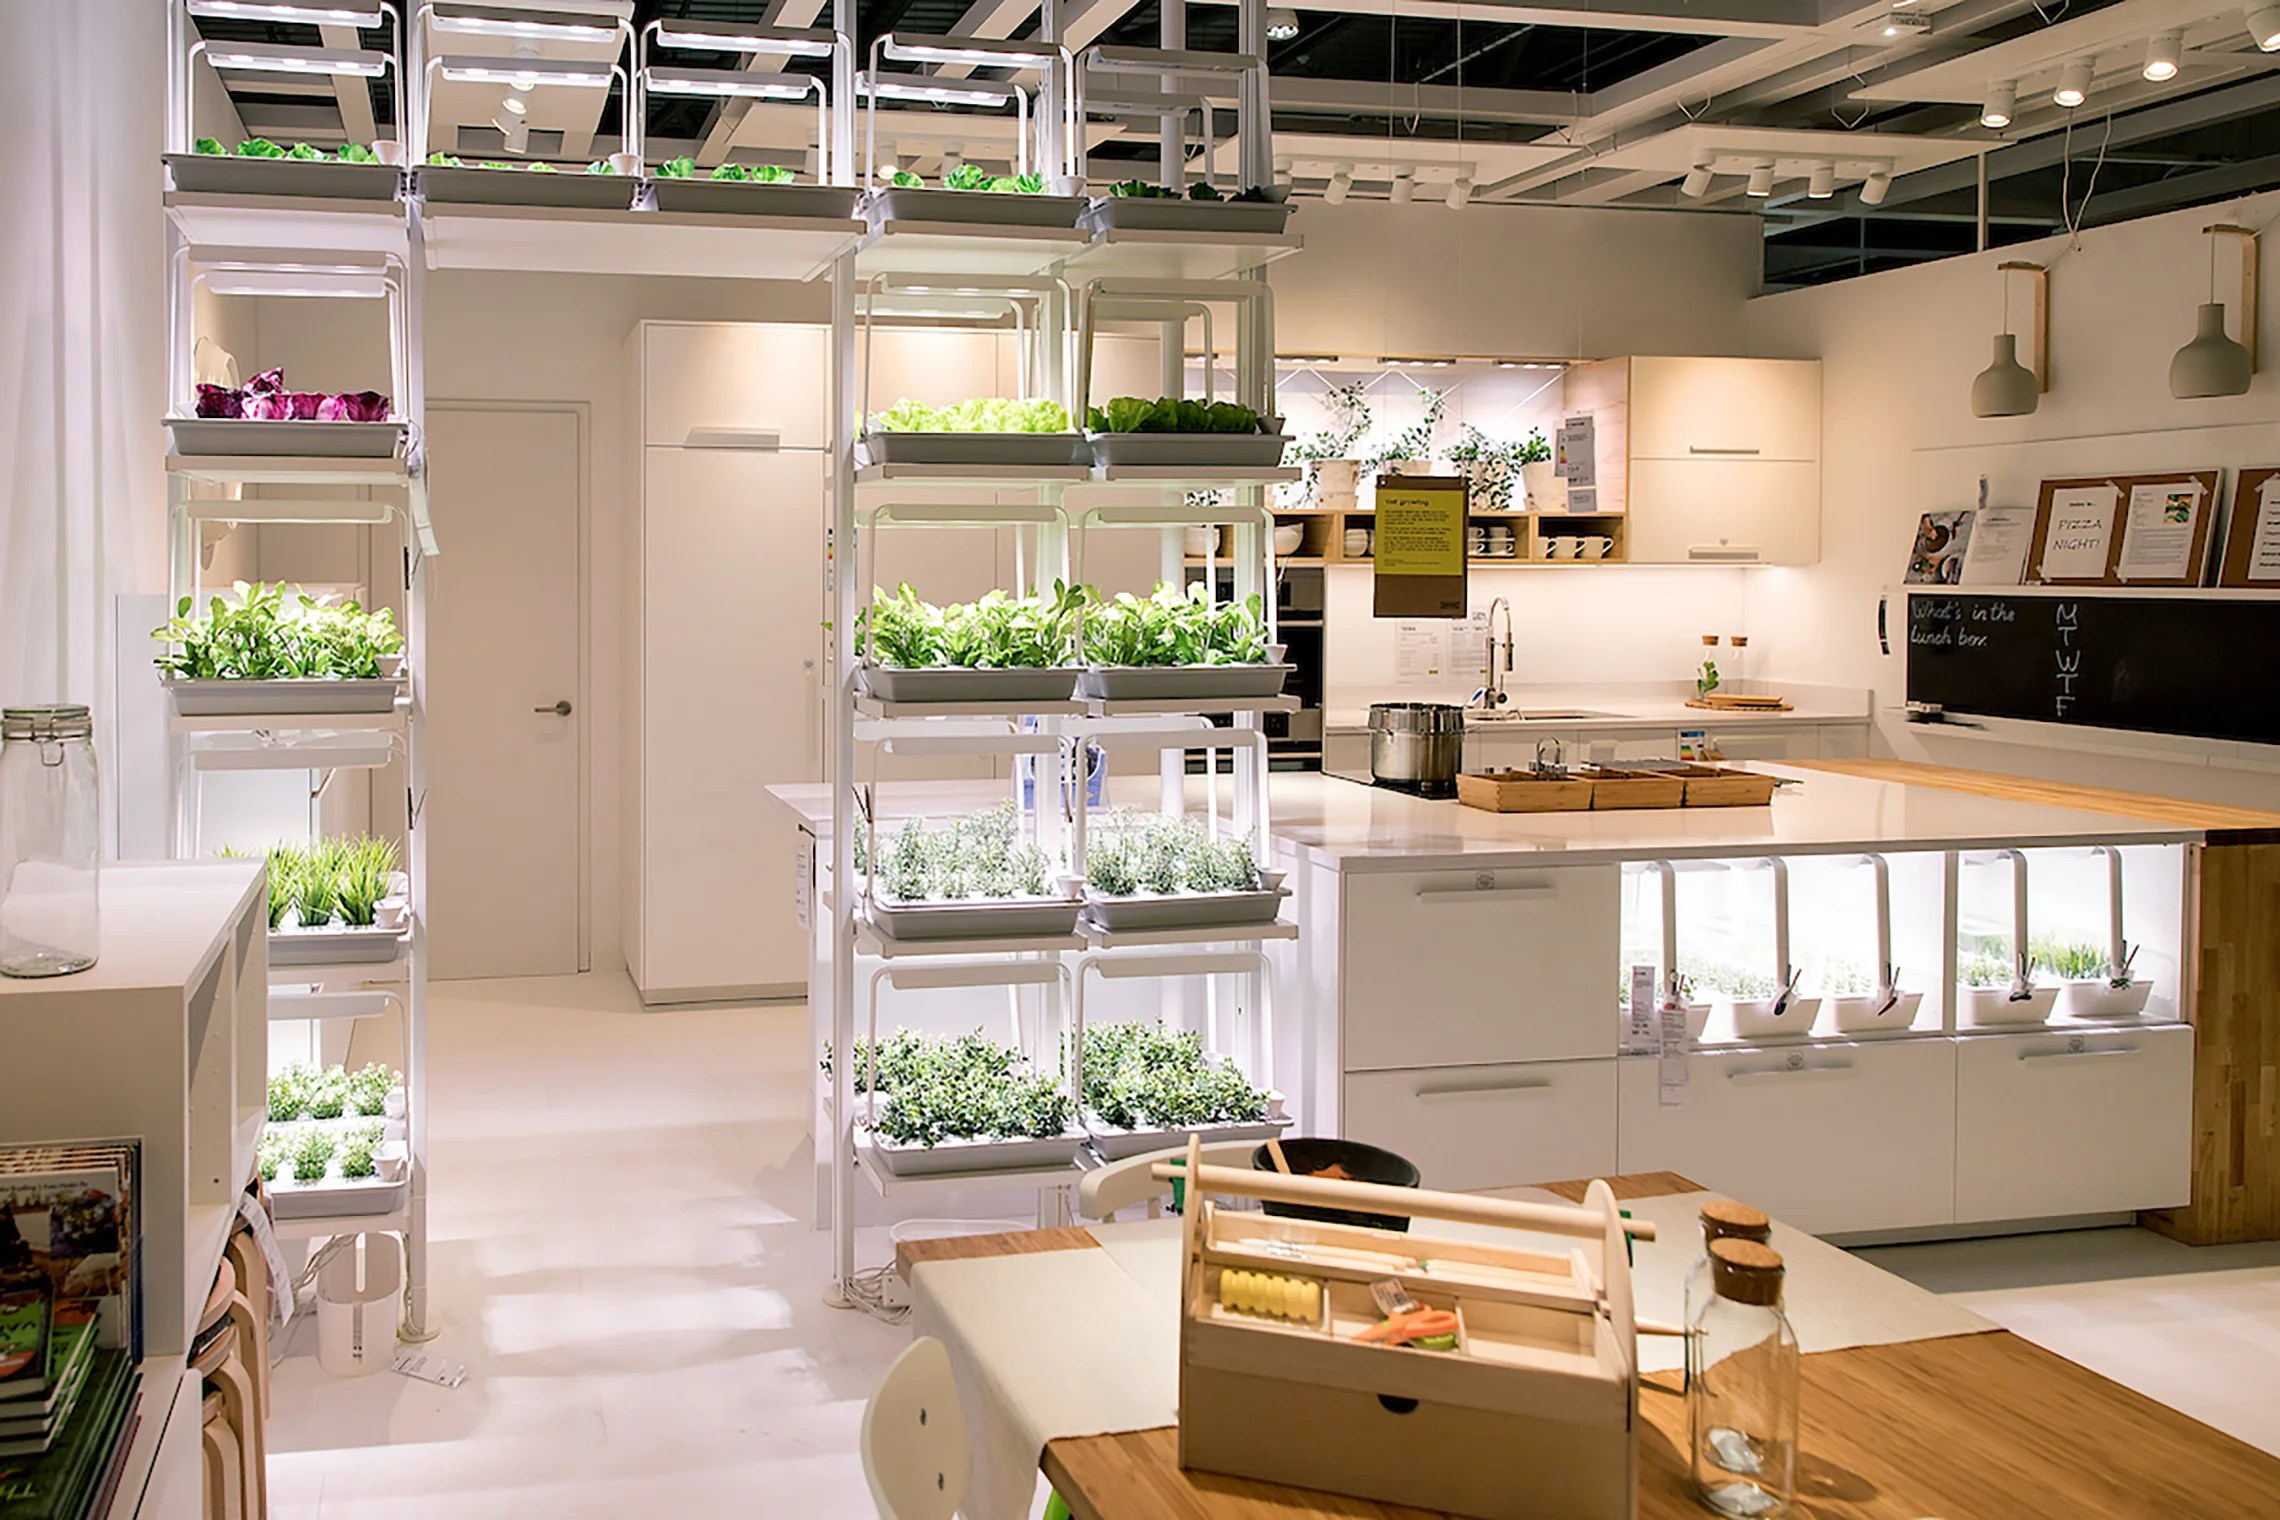 Ikea French Days Ikea S New Greenwich Store Is A Beacon Of Sustainability London